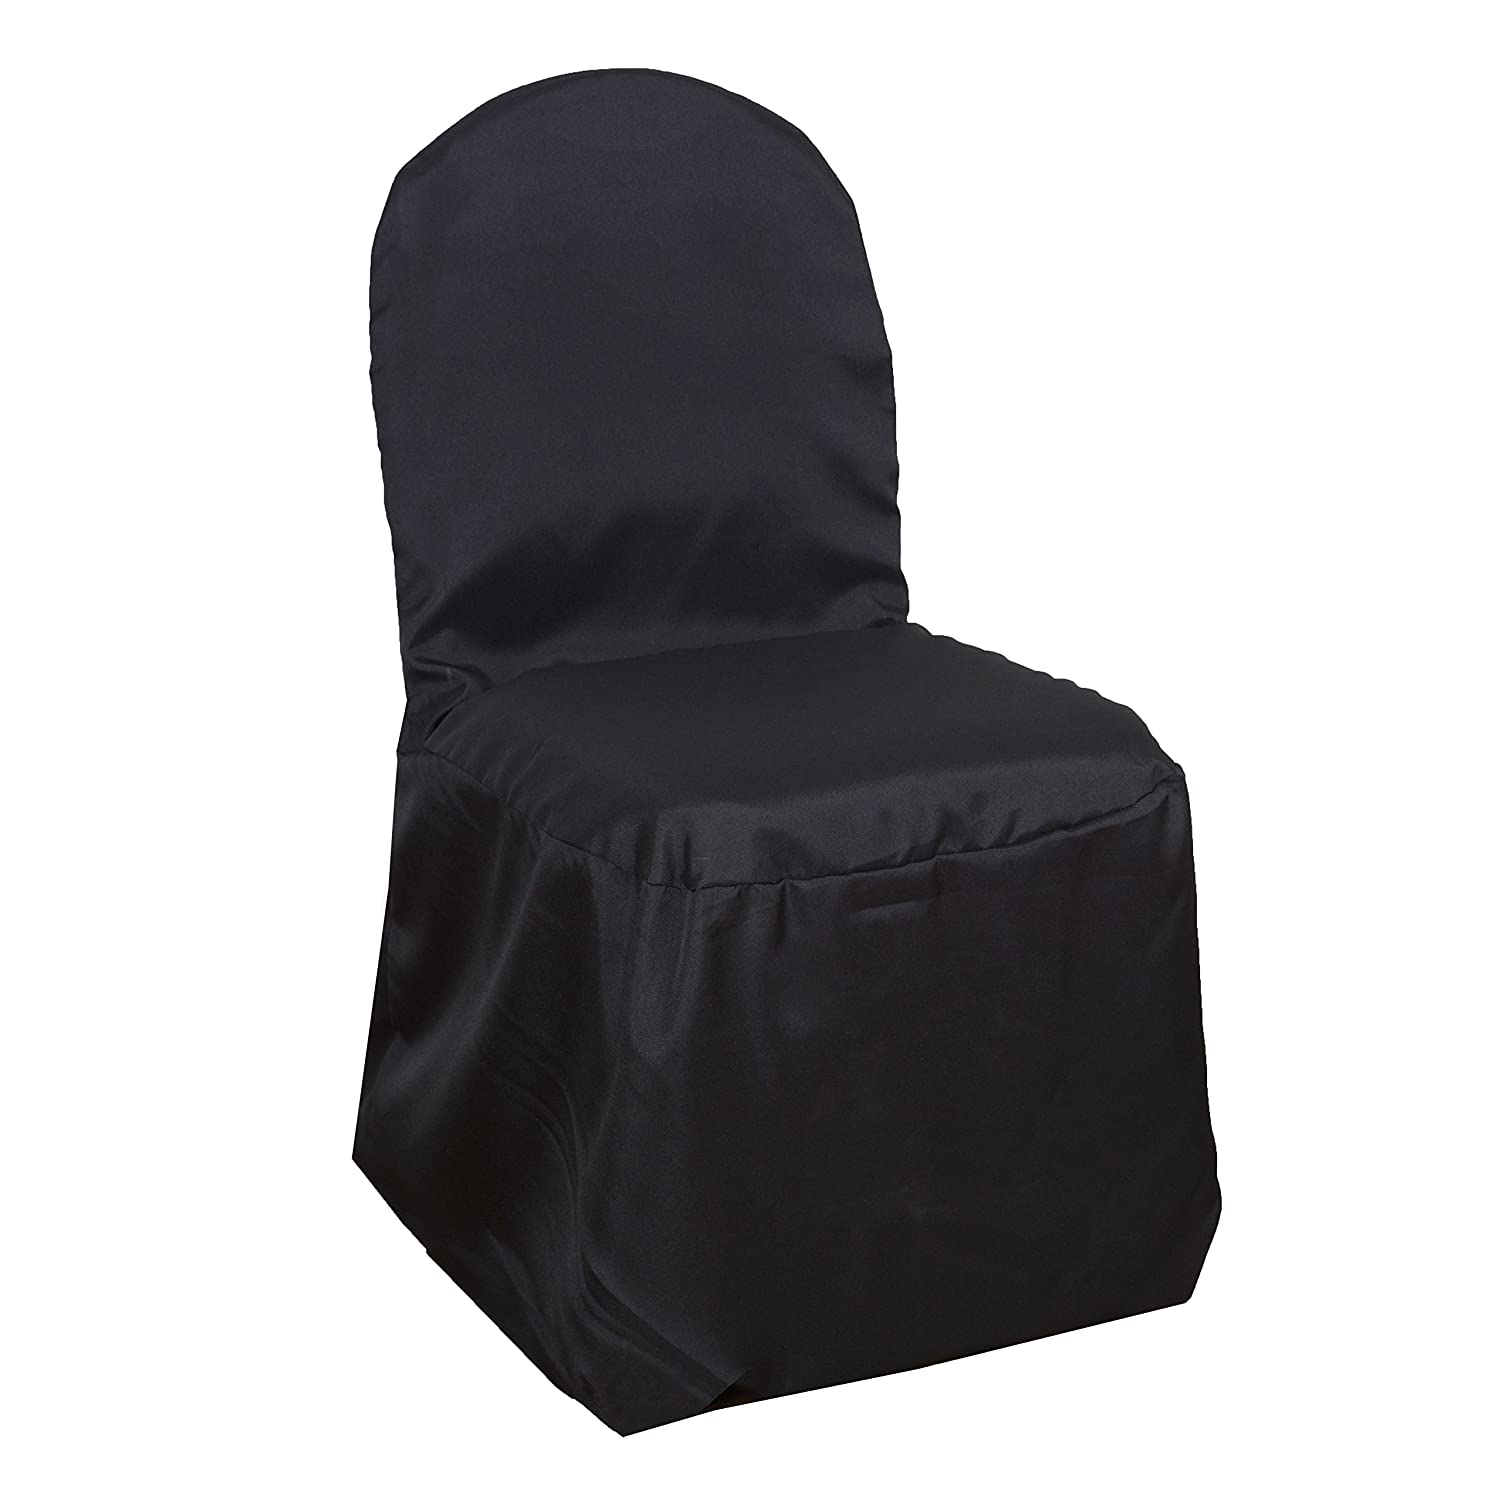 Superb Balsacircle 50 Pcs Black Polyester Banquet Chair Covers For Party Wedding Linens Decorations Dinning Ceremony Reception Supplies Ibusinesslaw Wood Chair Design Ideas Ibusinesslaworg